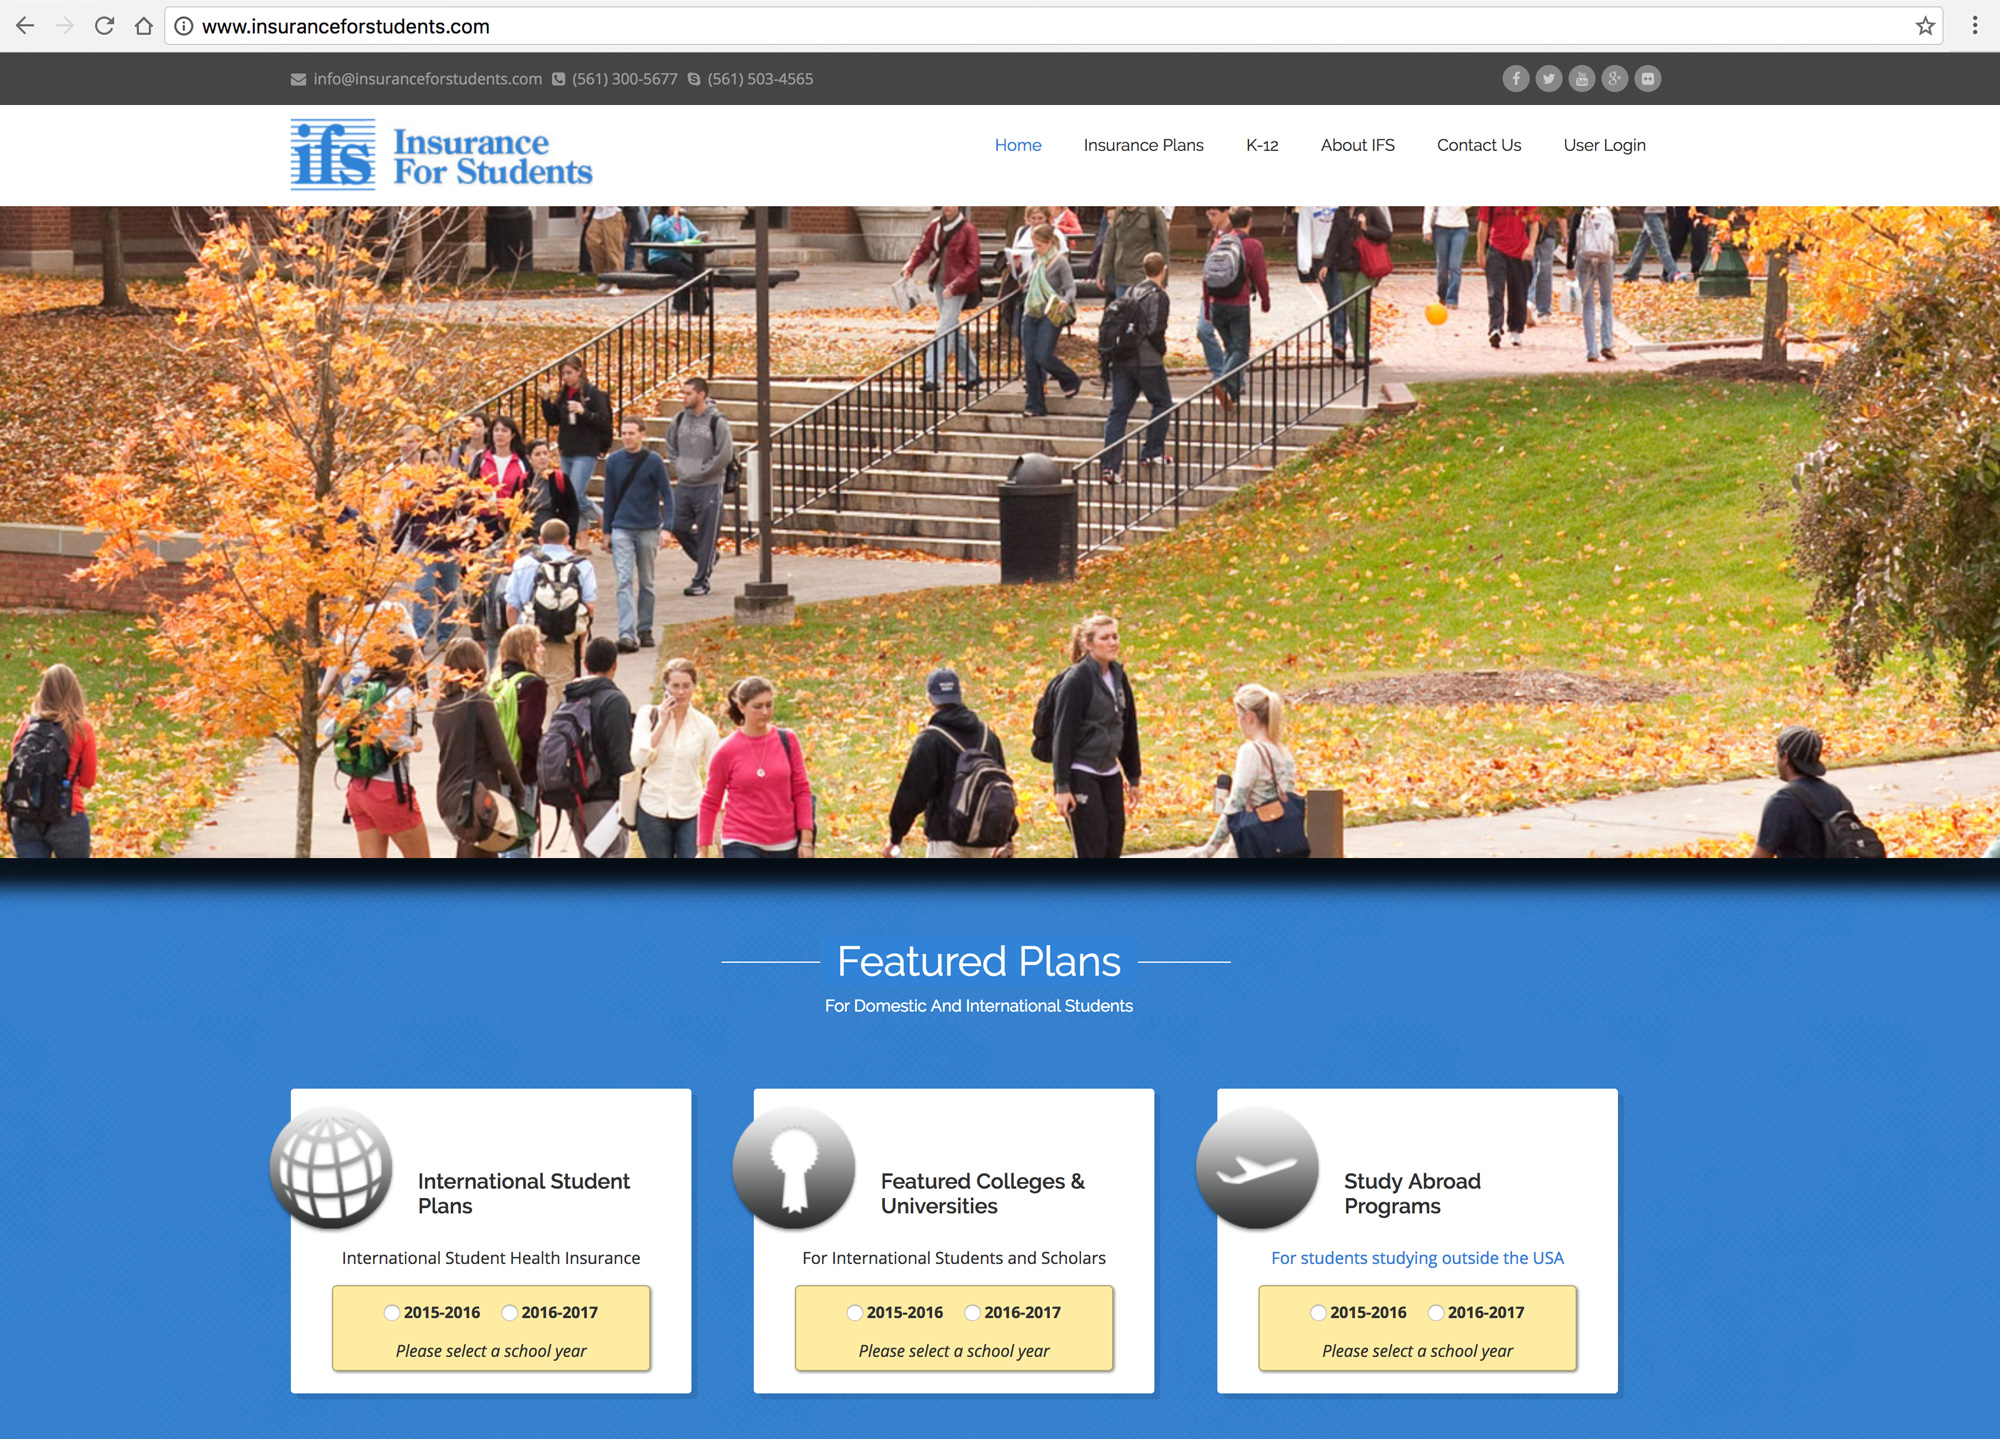 Insurance For Students Home Page - Desktop Browser View